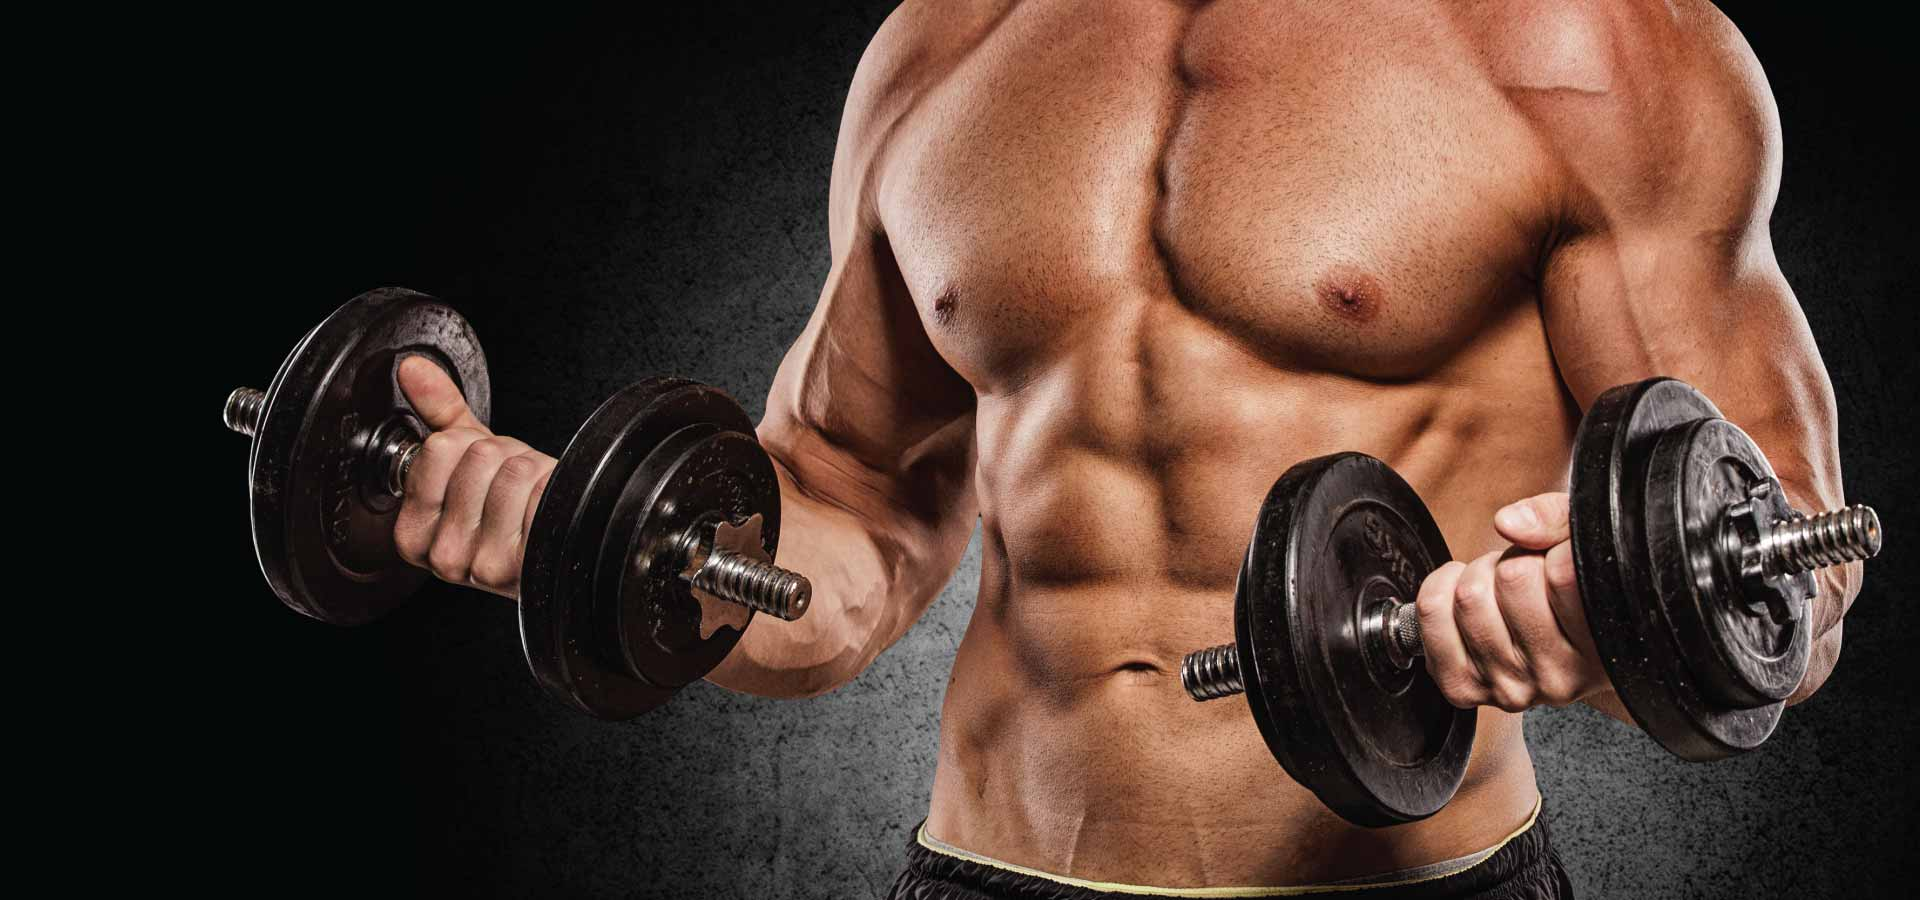 What Are The Best Supplements to Increase Strength and Mass?